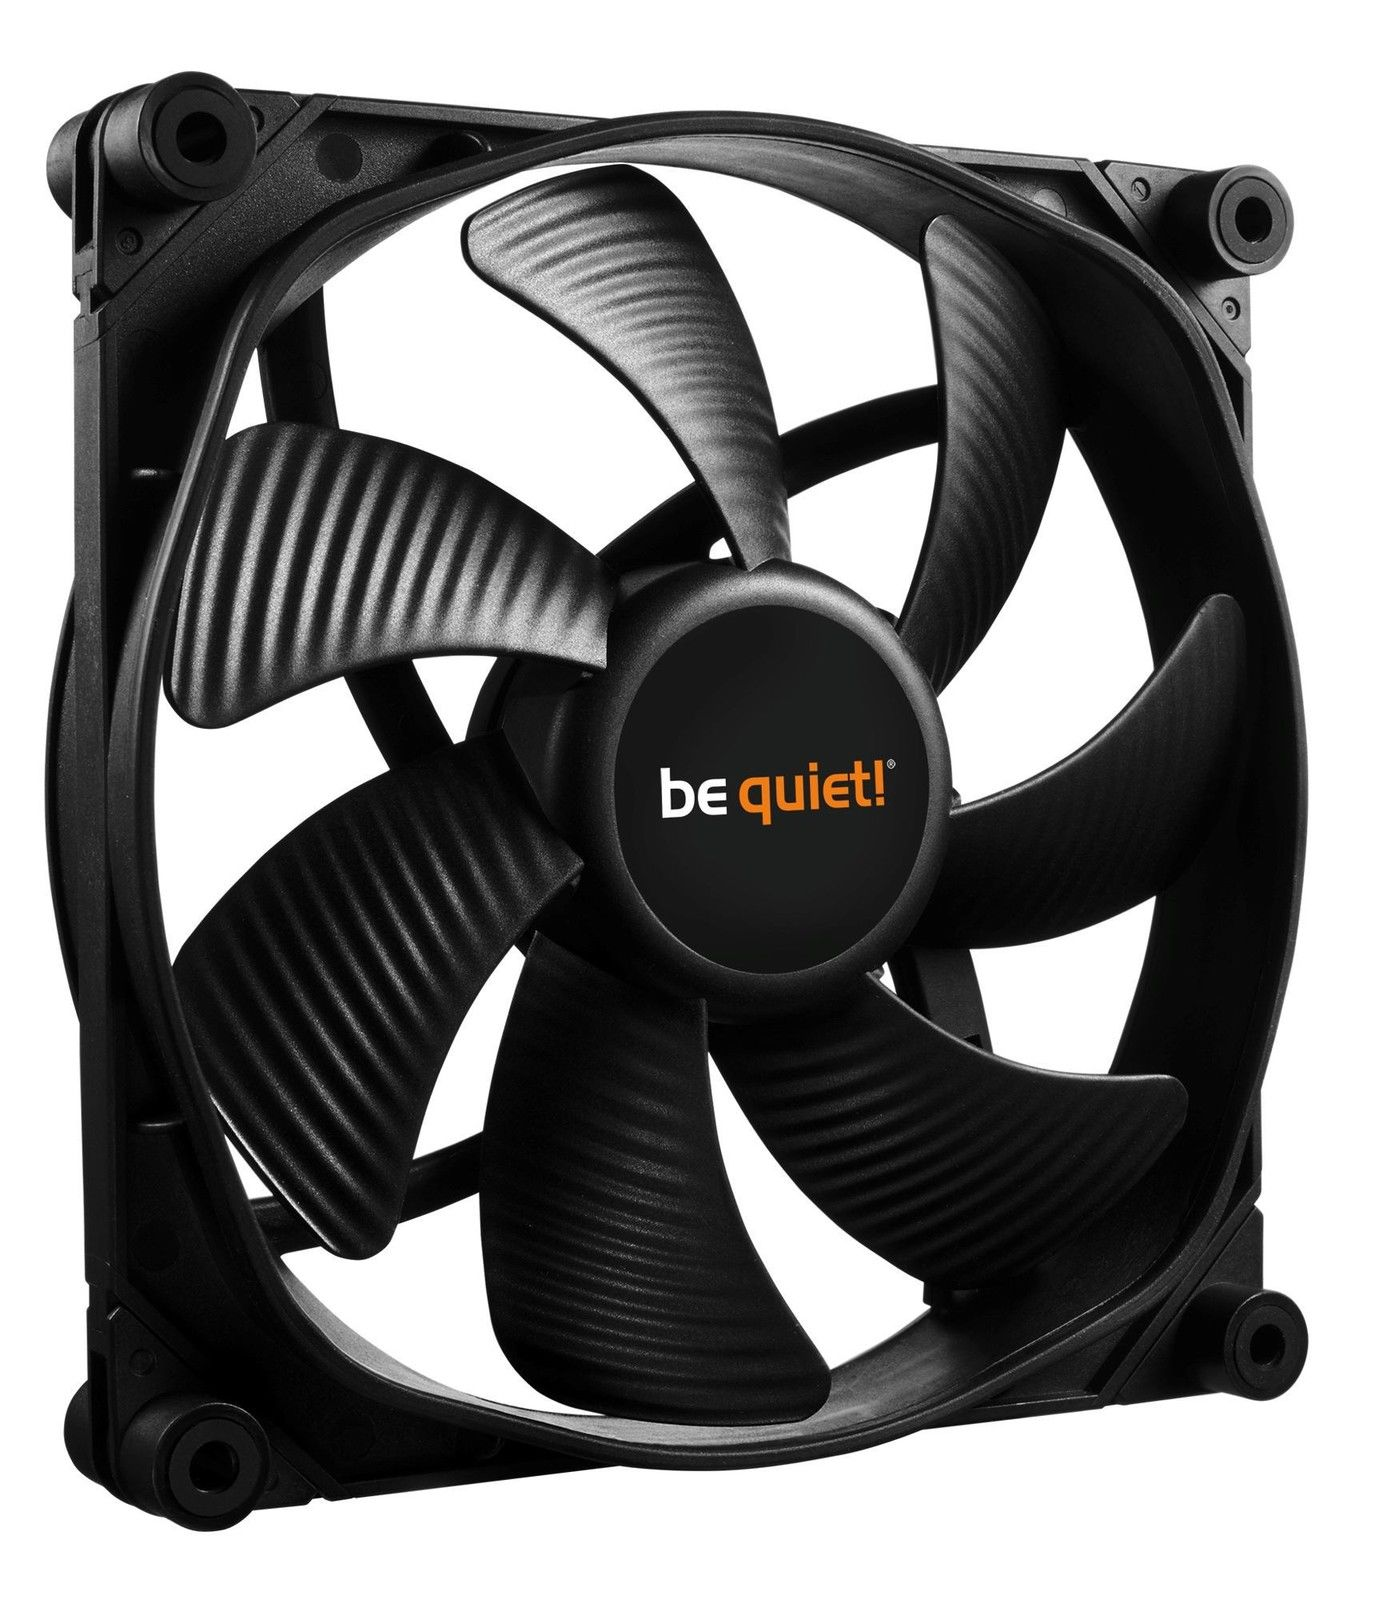 Be Quiet! Case Fan SilentWings 3 140mm PWM - Ventilateur boîtier - 0